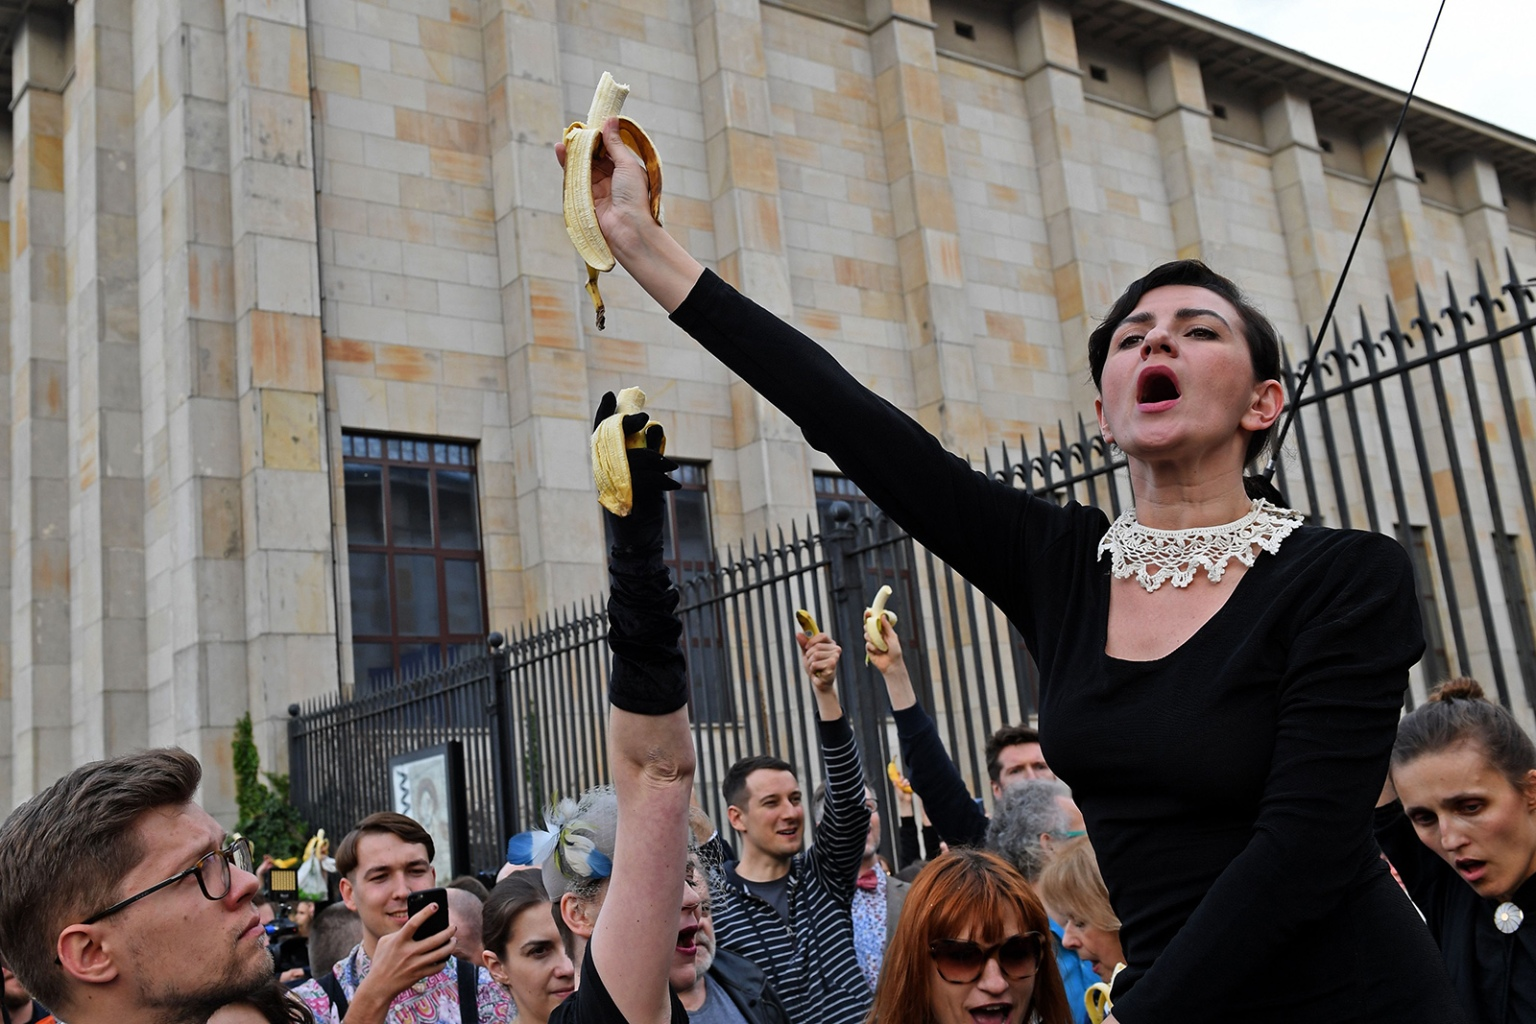 People with bananas demonstrate outside Warsaw's National Museum on April 29, to protest against censorship, after authorities removed an artwork at the museum presenting a woman eating a banana, saying it was improper. JANEK SKARZYNSKI/AFP/Getty Images